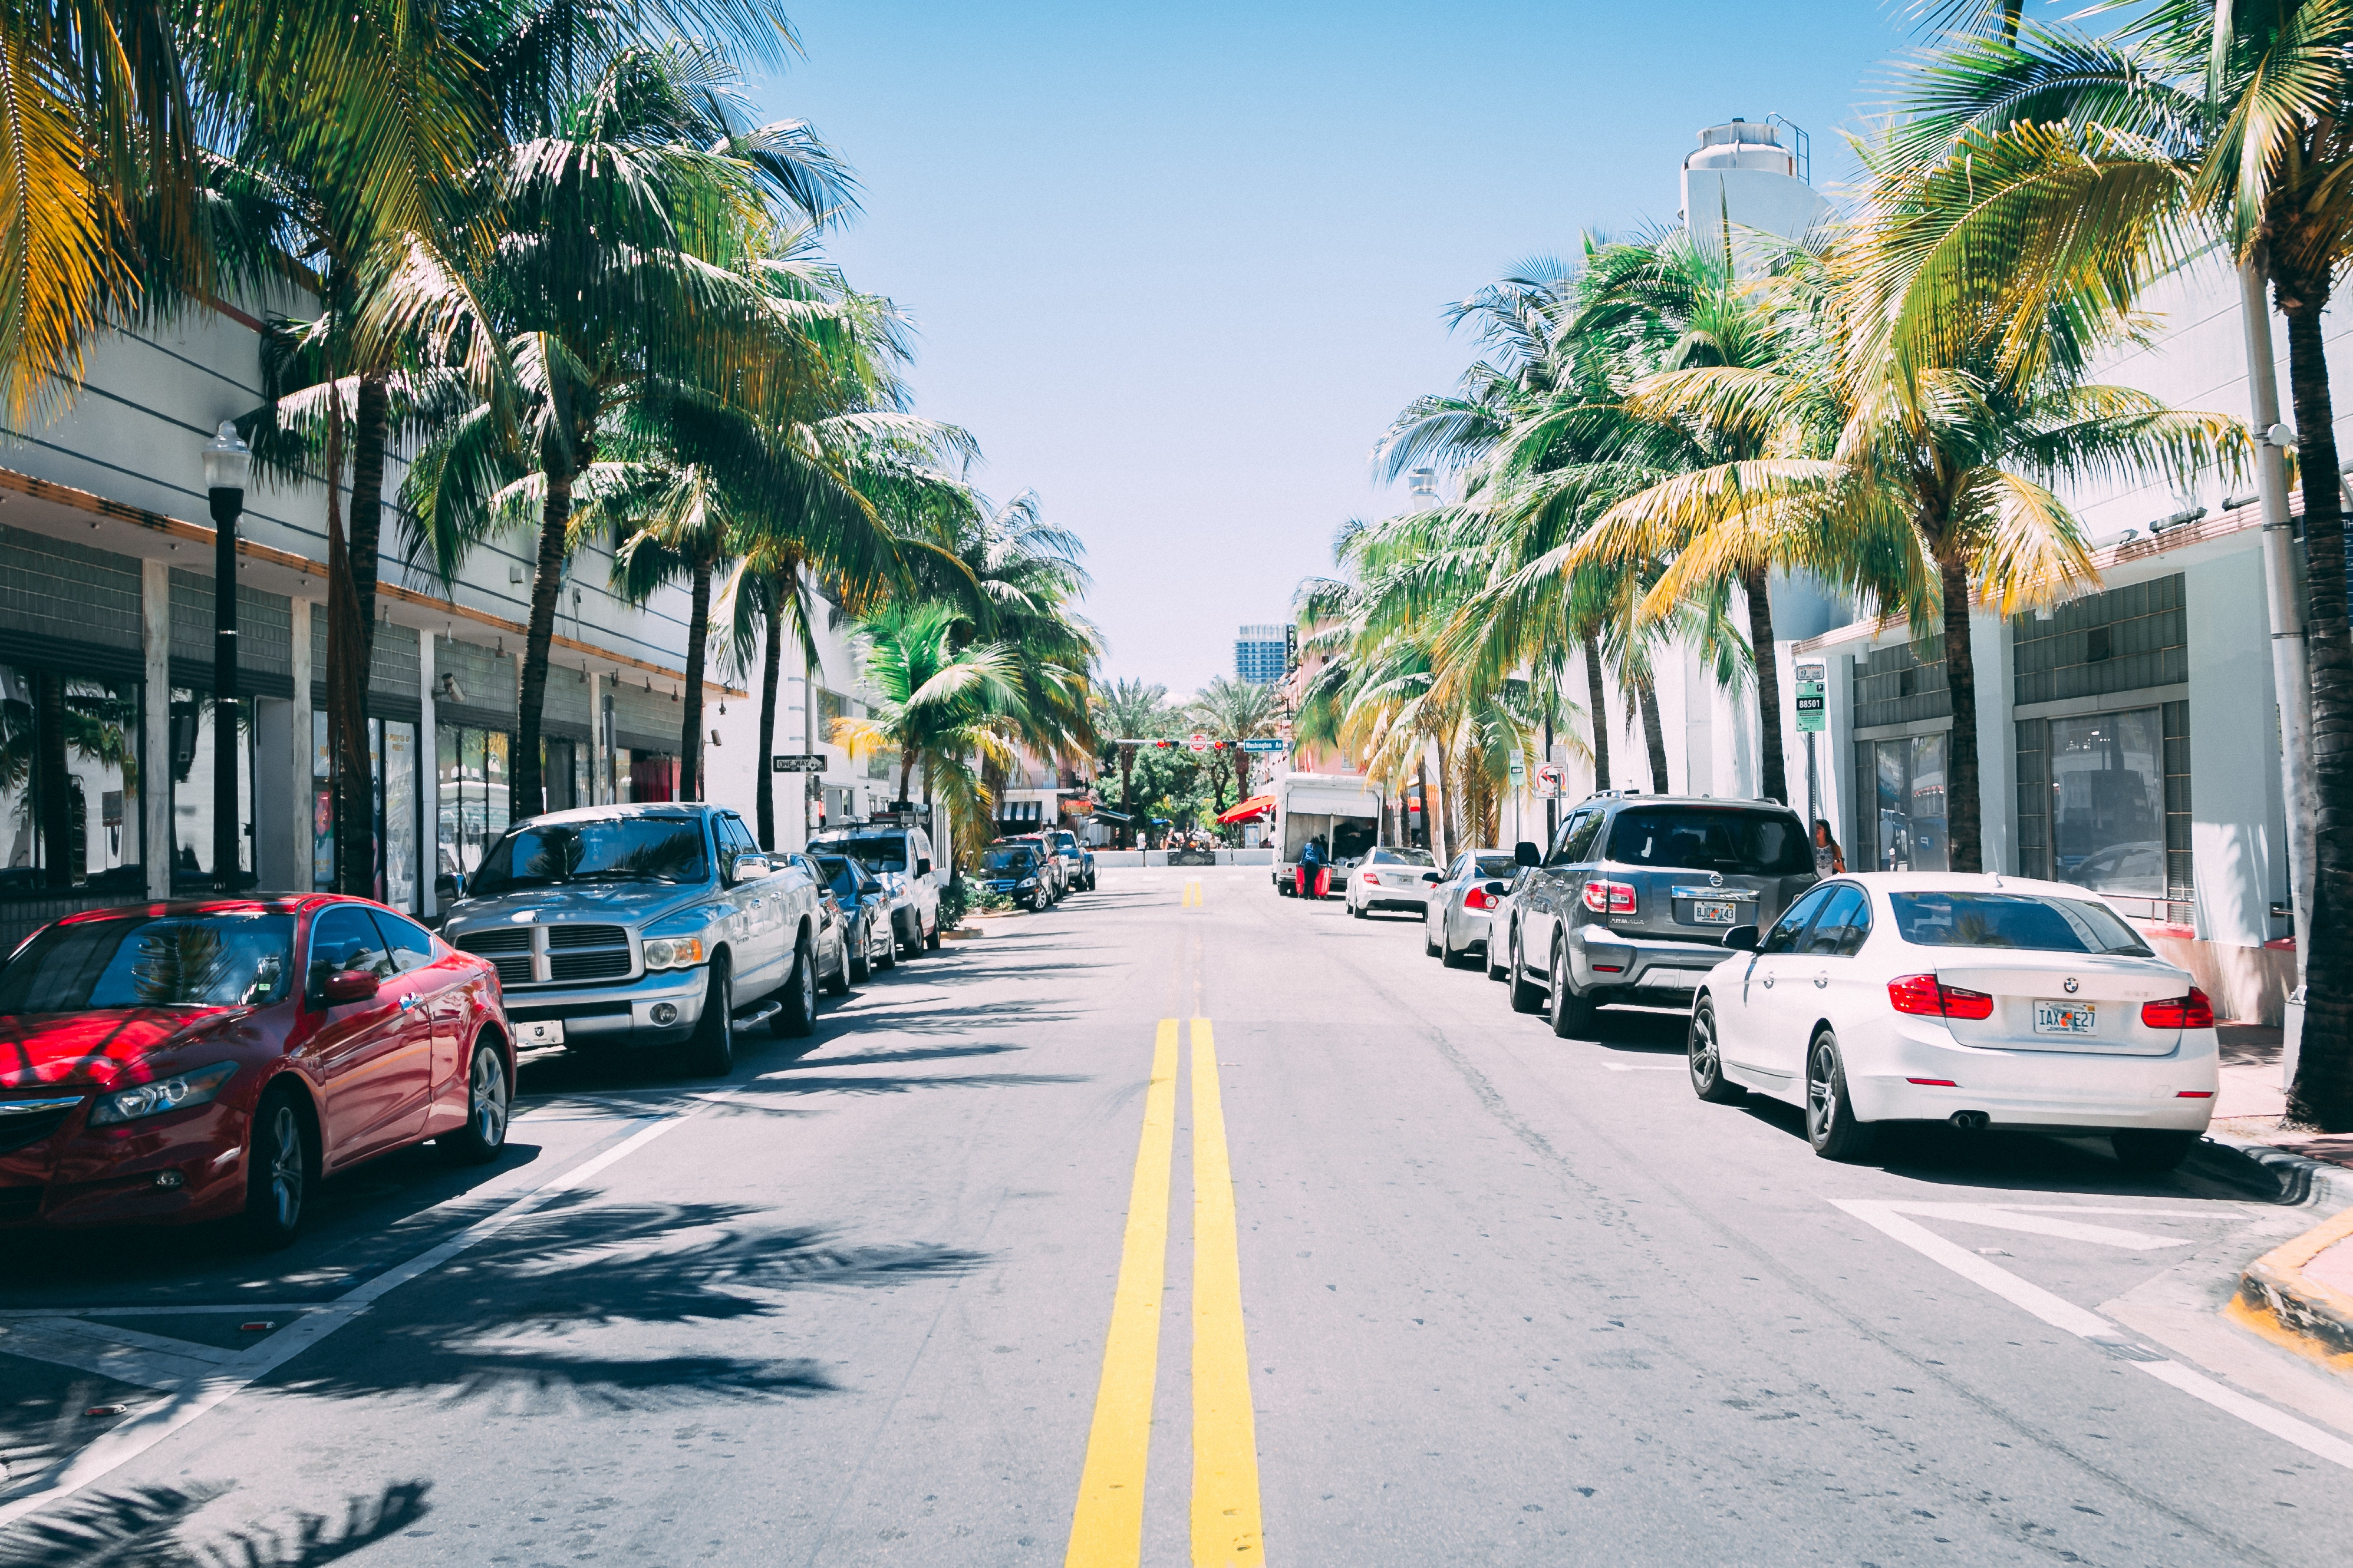 Picture of the middle of the street in Miami Beach